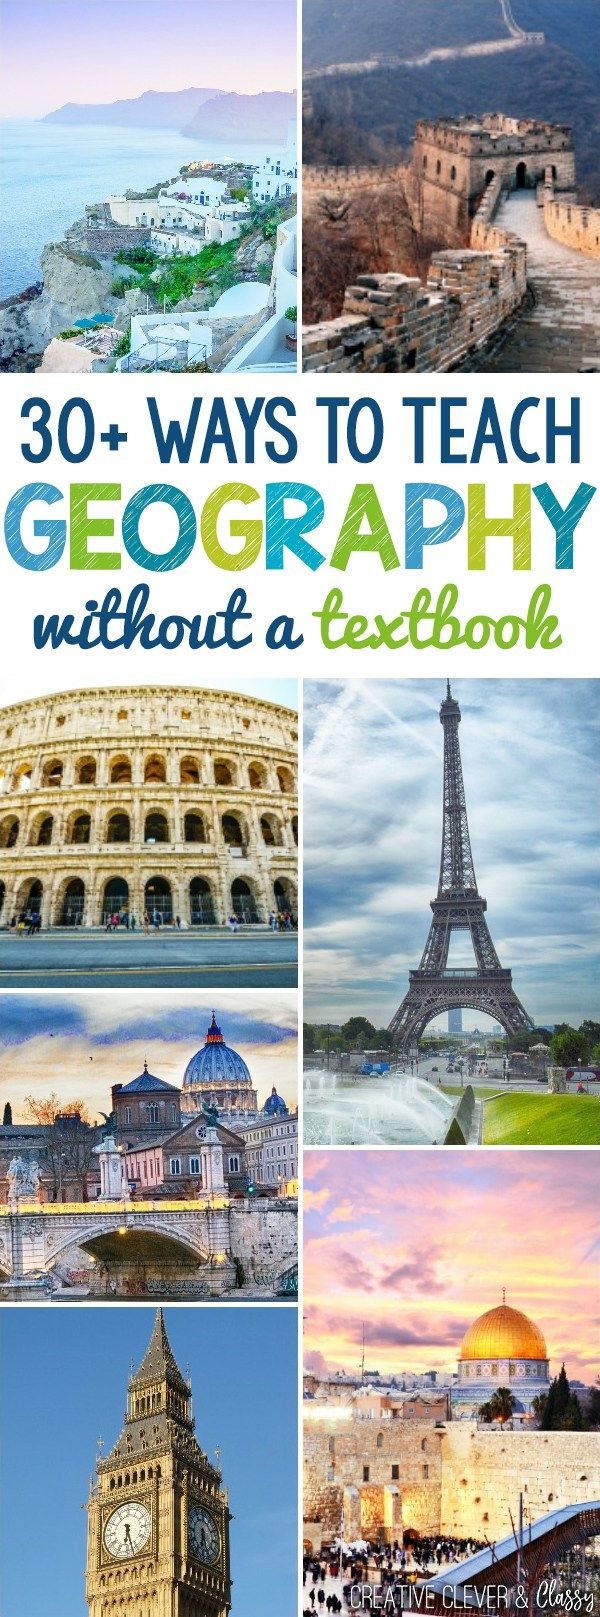 Here are 30+ ways to teach geography, ranging from geography games to the layers of the earth with cake, without a textbook!